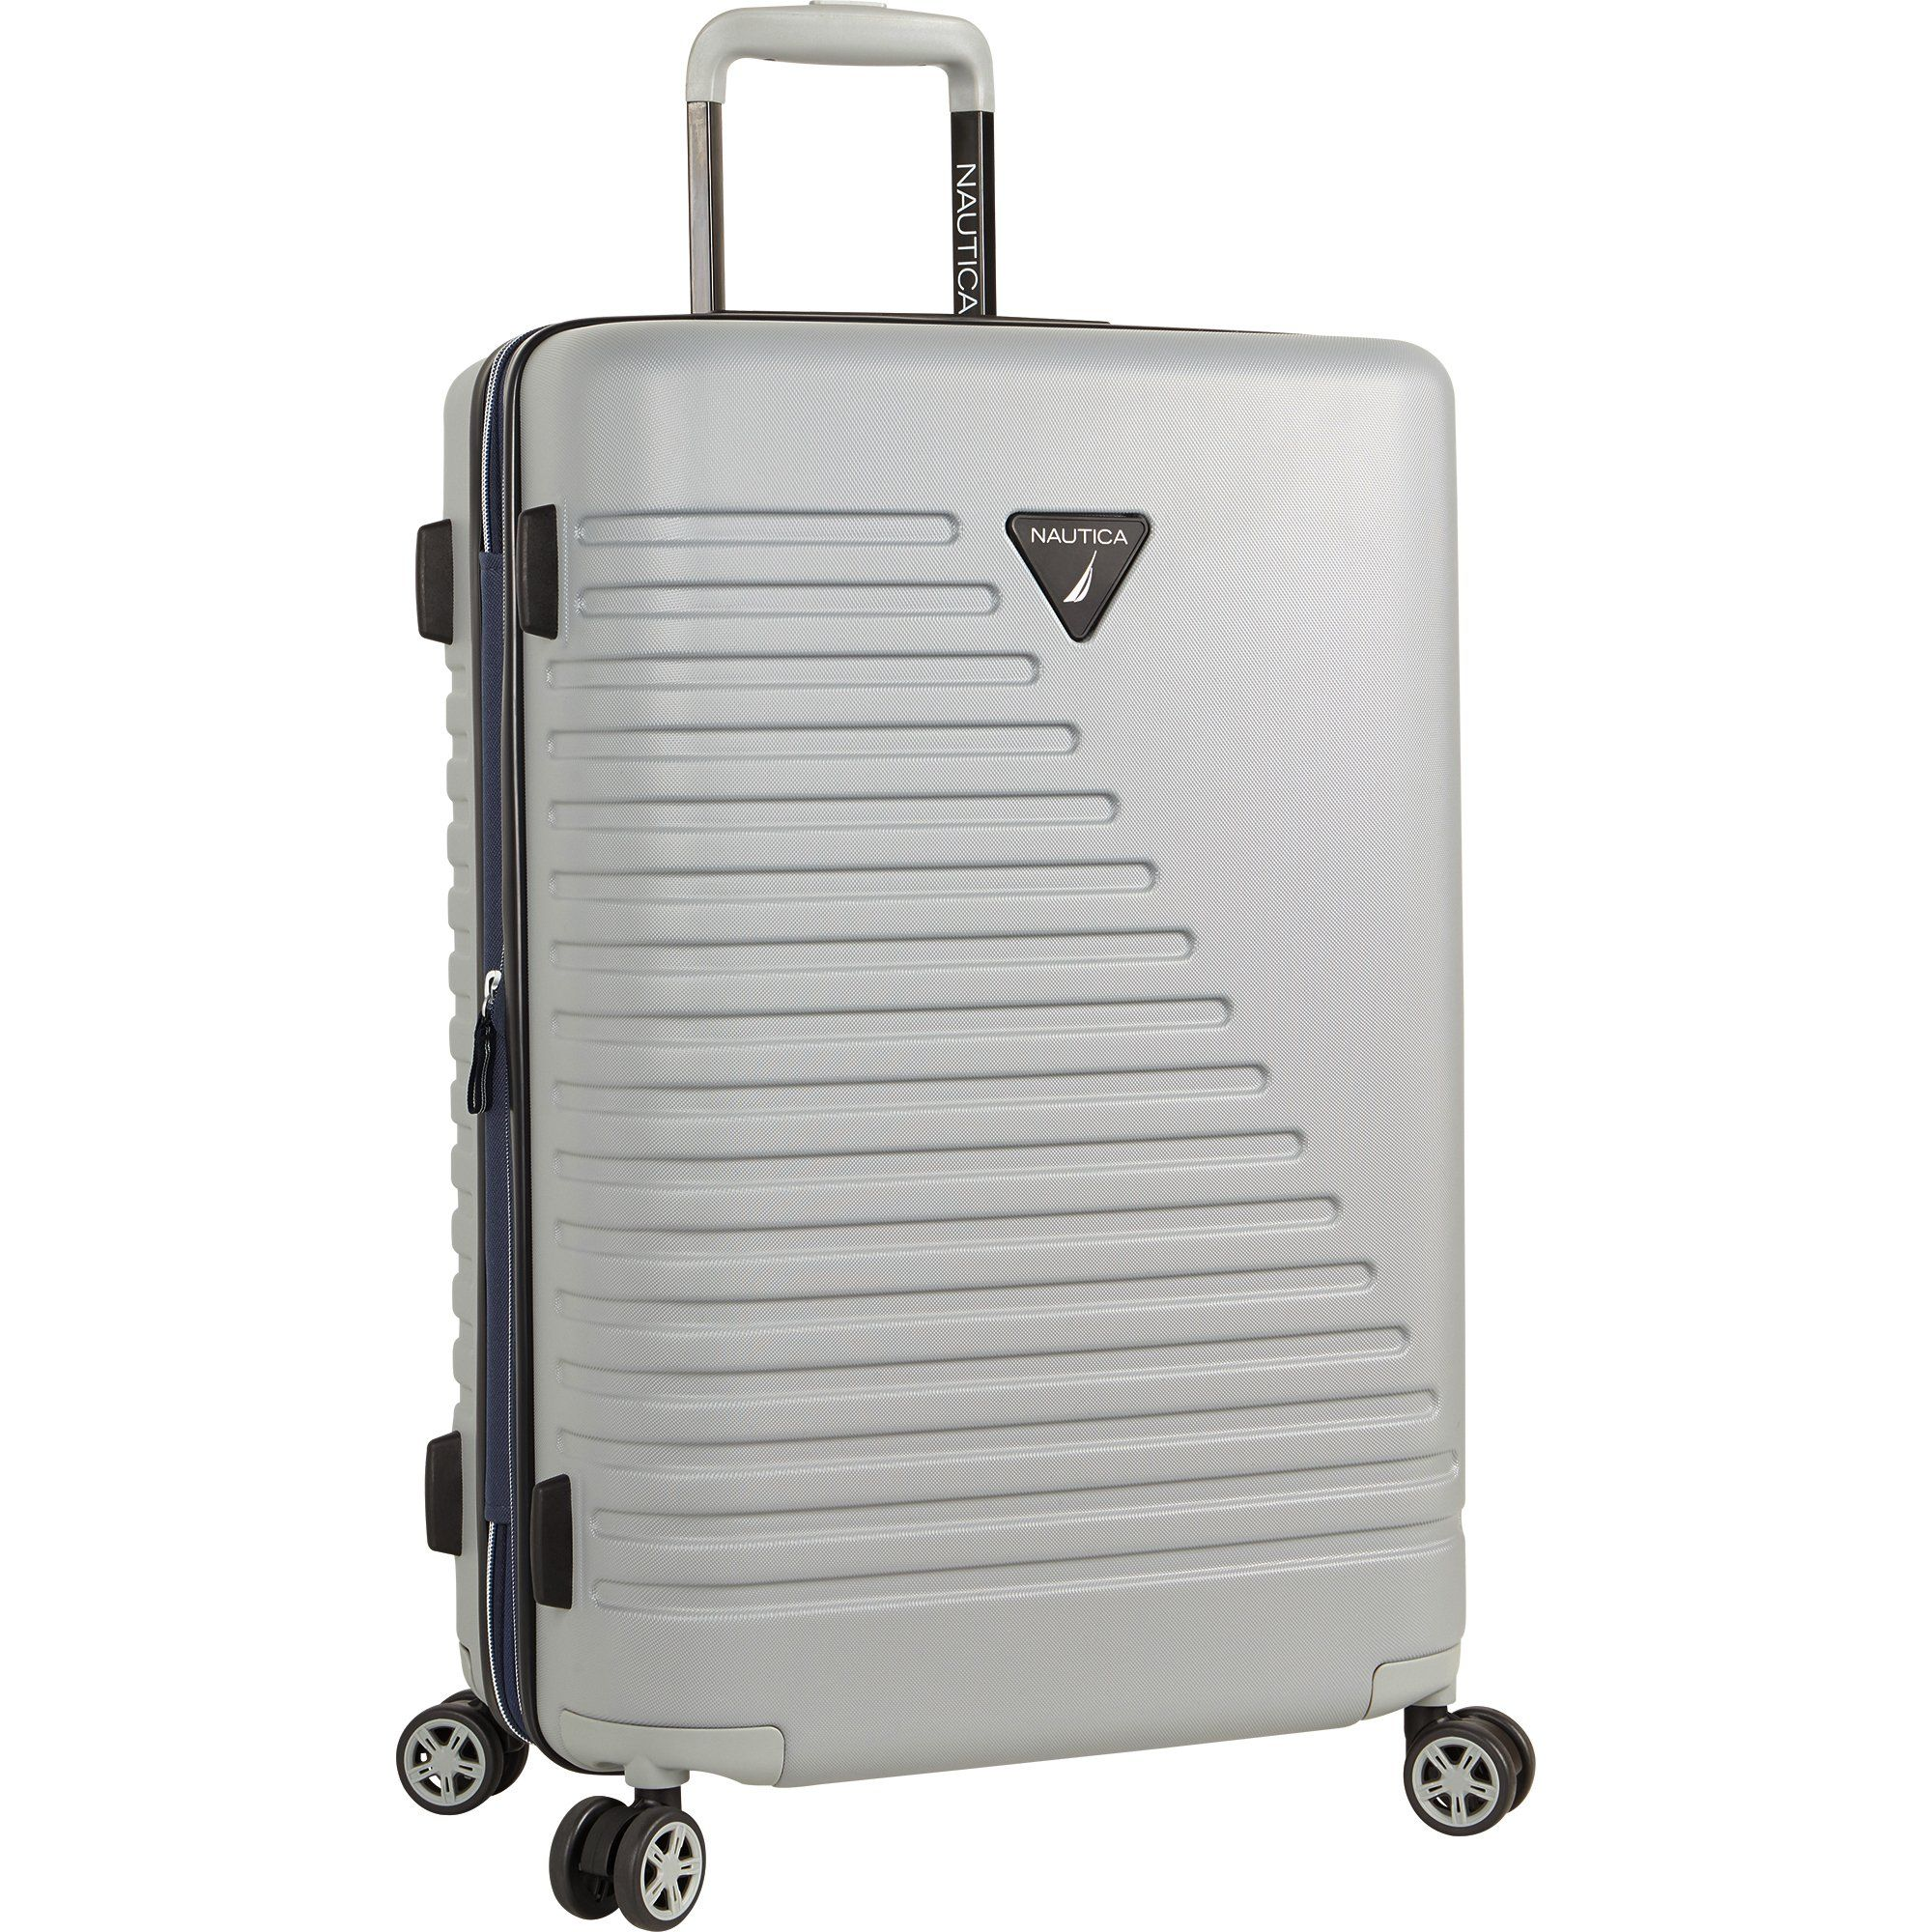 1b3b99ad4d93 Nautica Flagship Carry On 20 inch Hardside Expandable Spinner ...